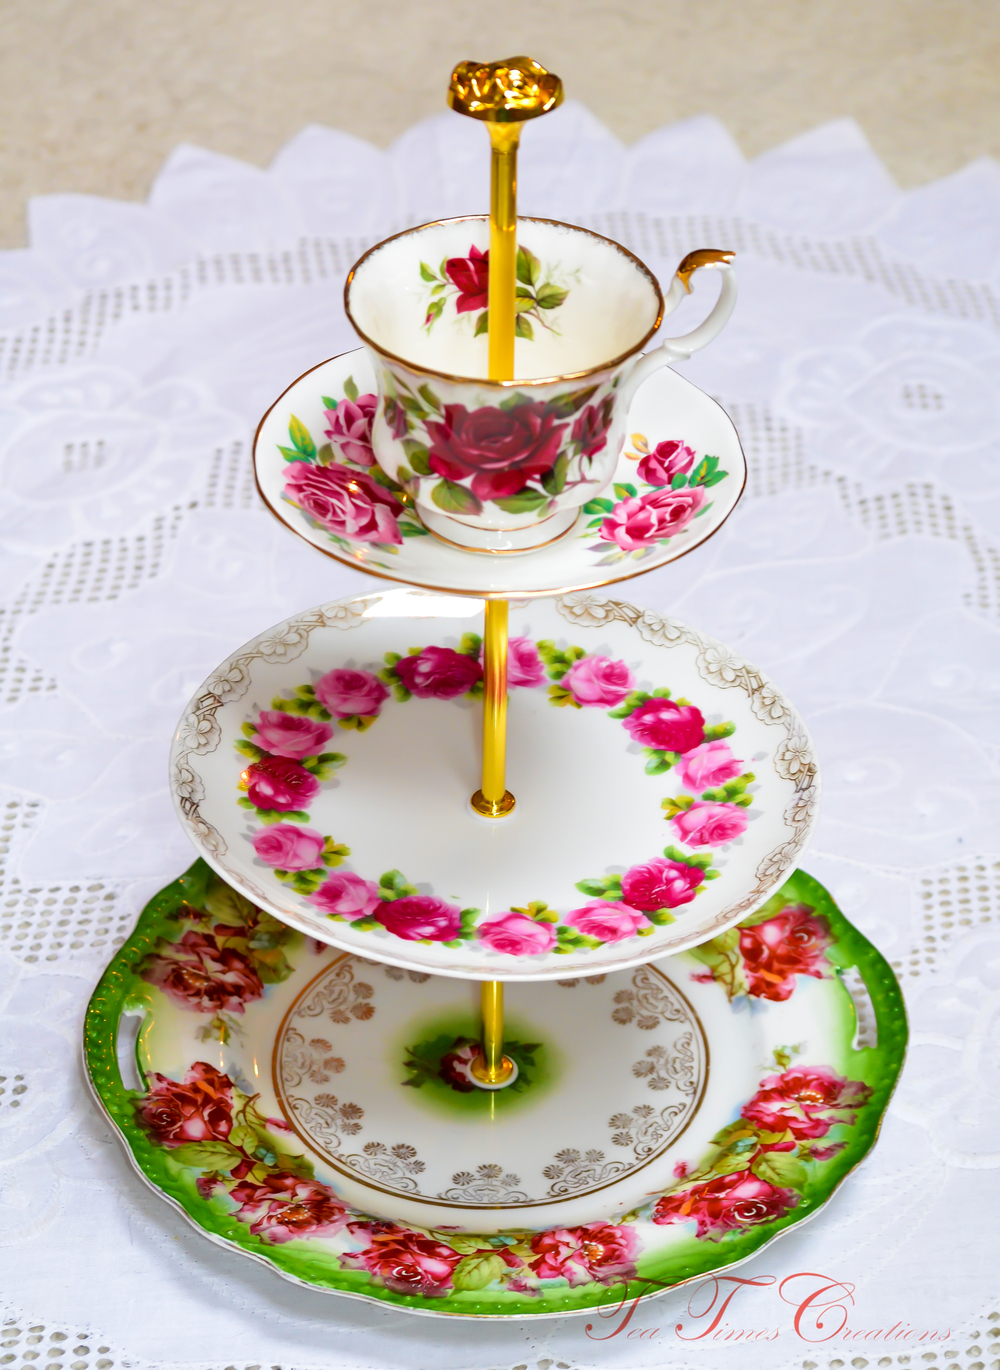 This tutorial will show you how to create a  Mad Hatter  style cake/tea stand. These whimsical center pieces are very popular among vintage china lovers.  sc 1 st  Tea Times Creations & DIY: How to make a Mad Hatter Tea/Cake Stand u2014 Tea Times Creations